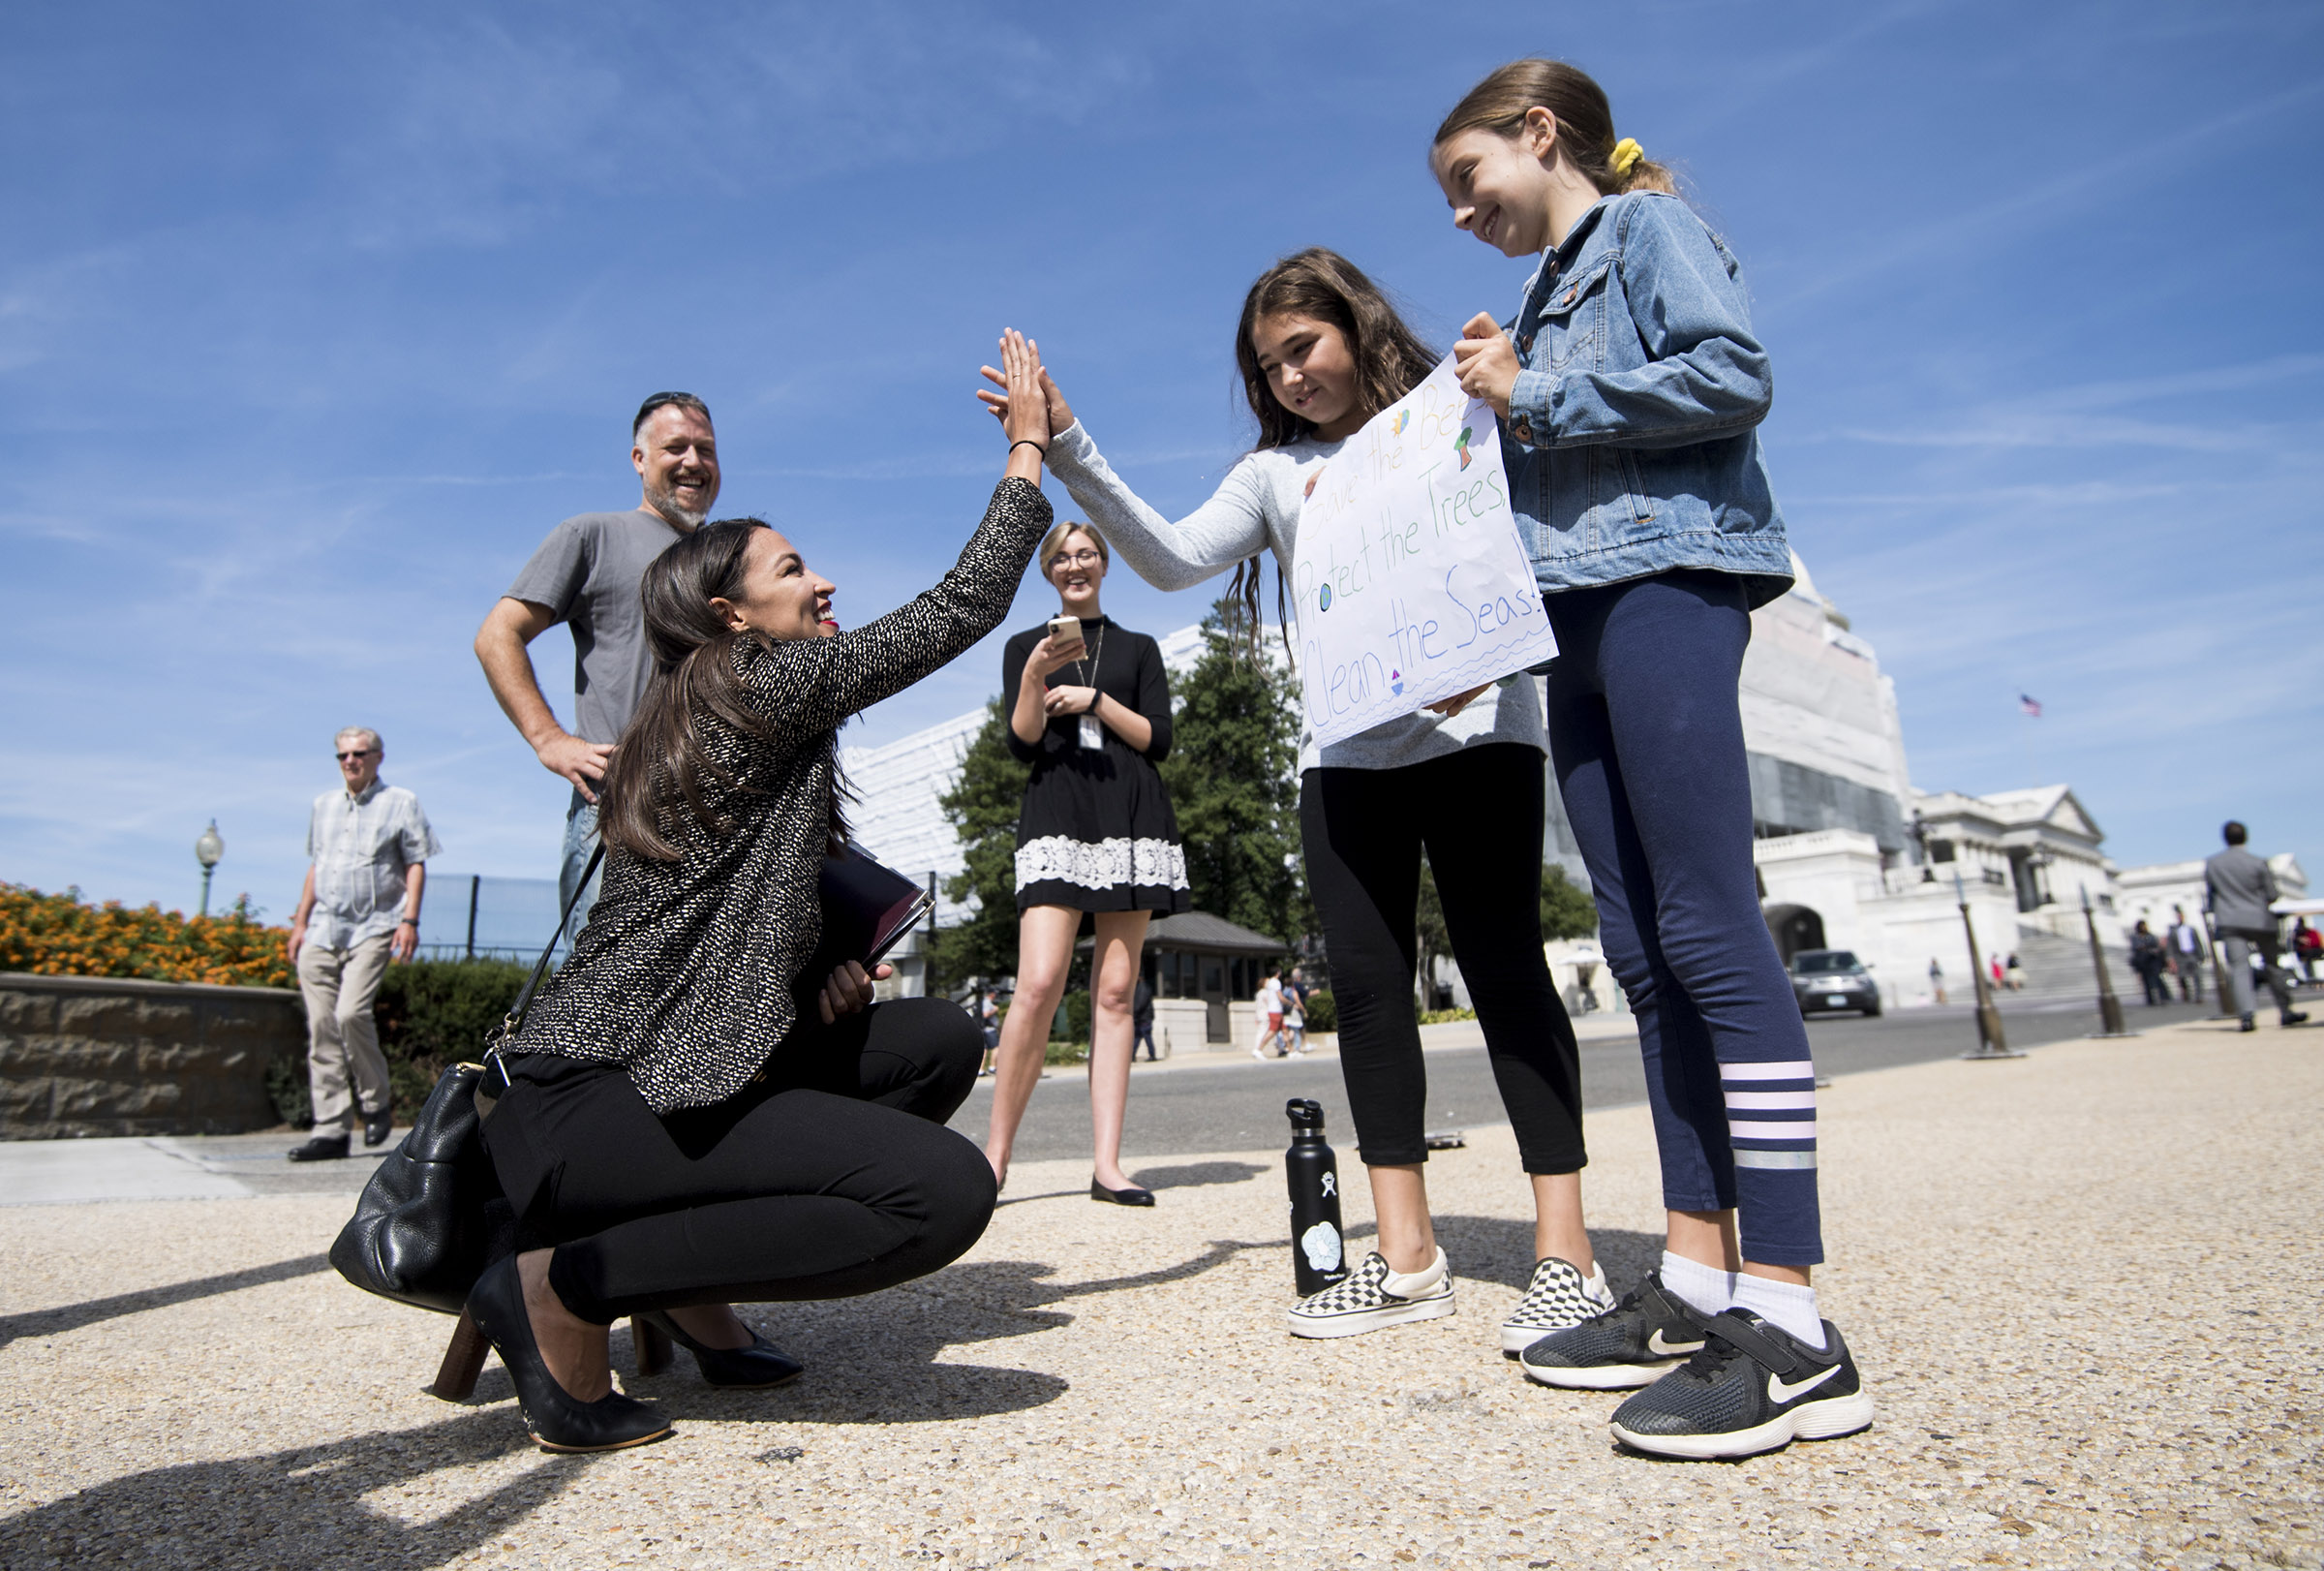 Rep. Alexandria Ocasio-Cortez, D-N.Y., high-fives climate striking students Evelyn Seek, center, and Pema Duncan, right, as they hold their climate strike sign in front of the Capitol on Friday, Sept. 20, 2019.